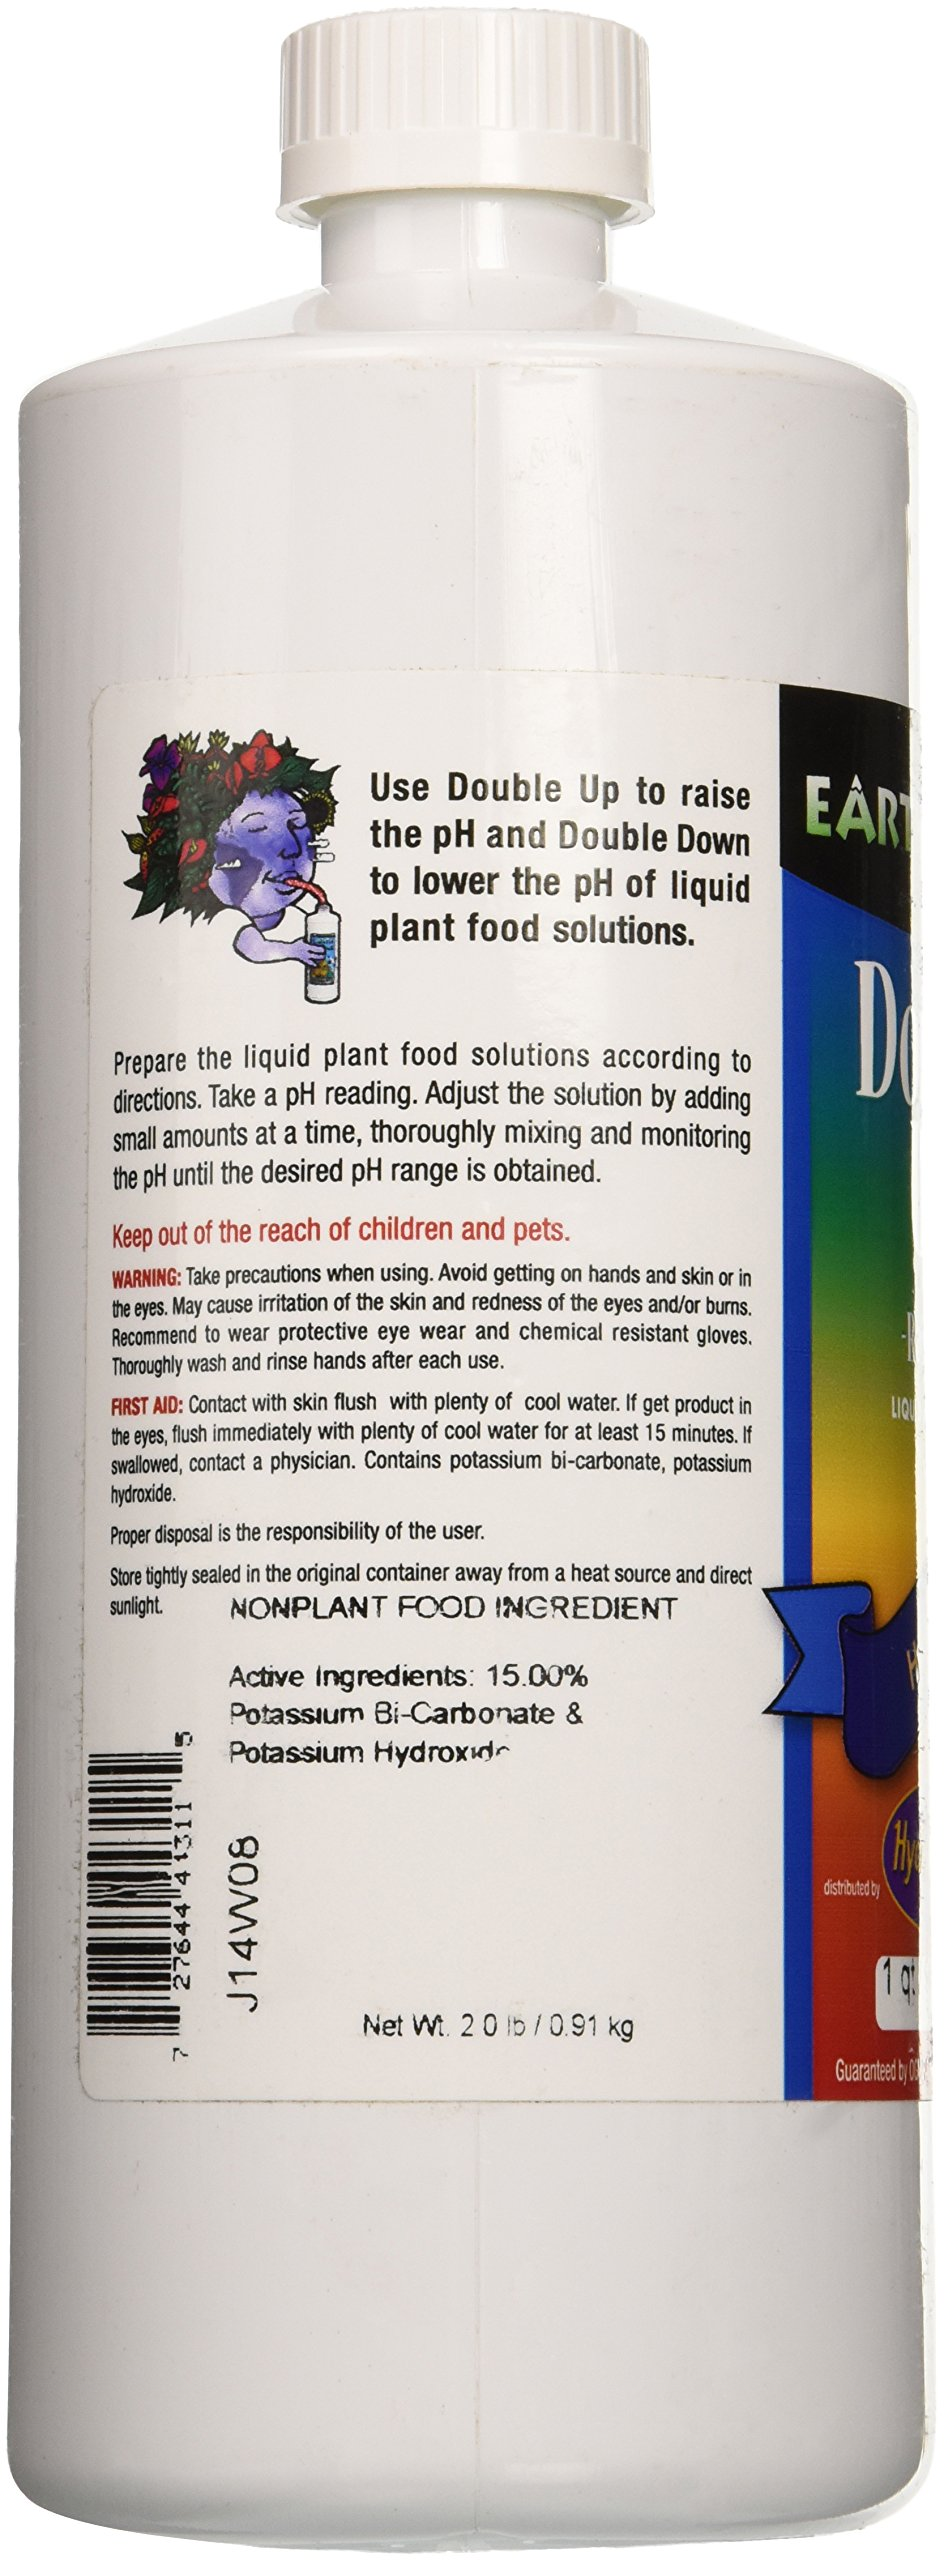 HydroOrganics HOH81101 1-Quart Double Up Liquid PH Adjuster by HydroOrganics (Image #3)